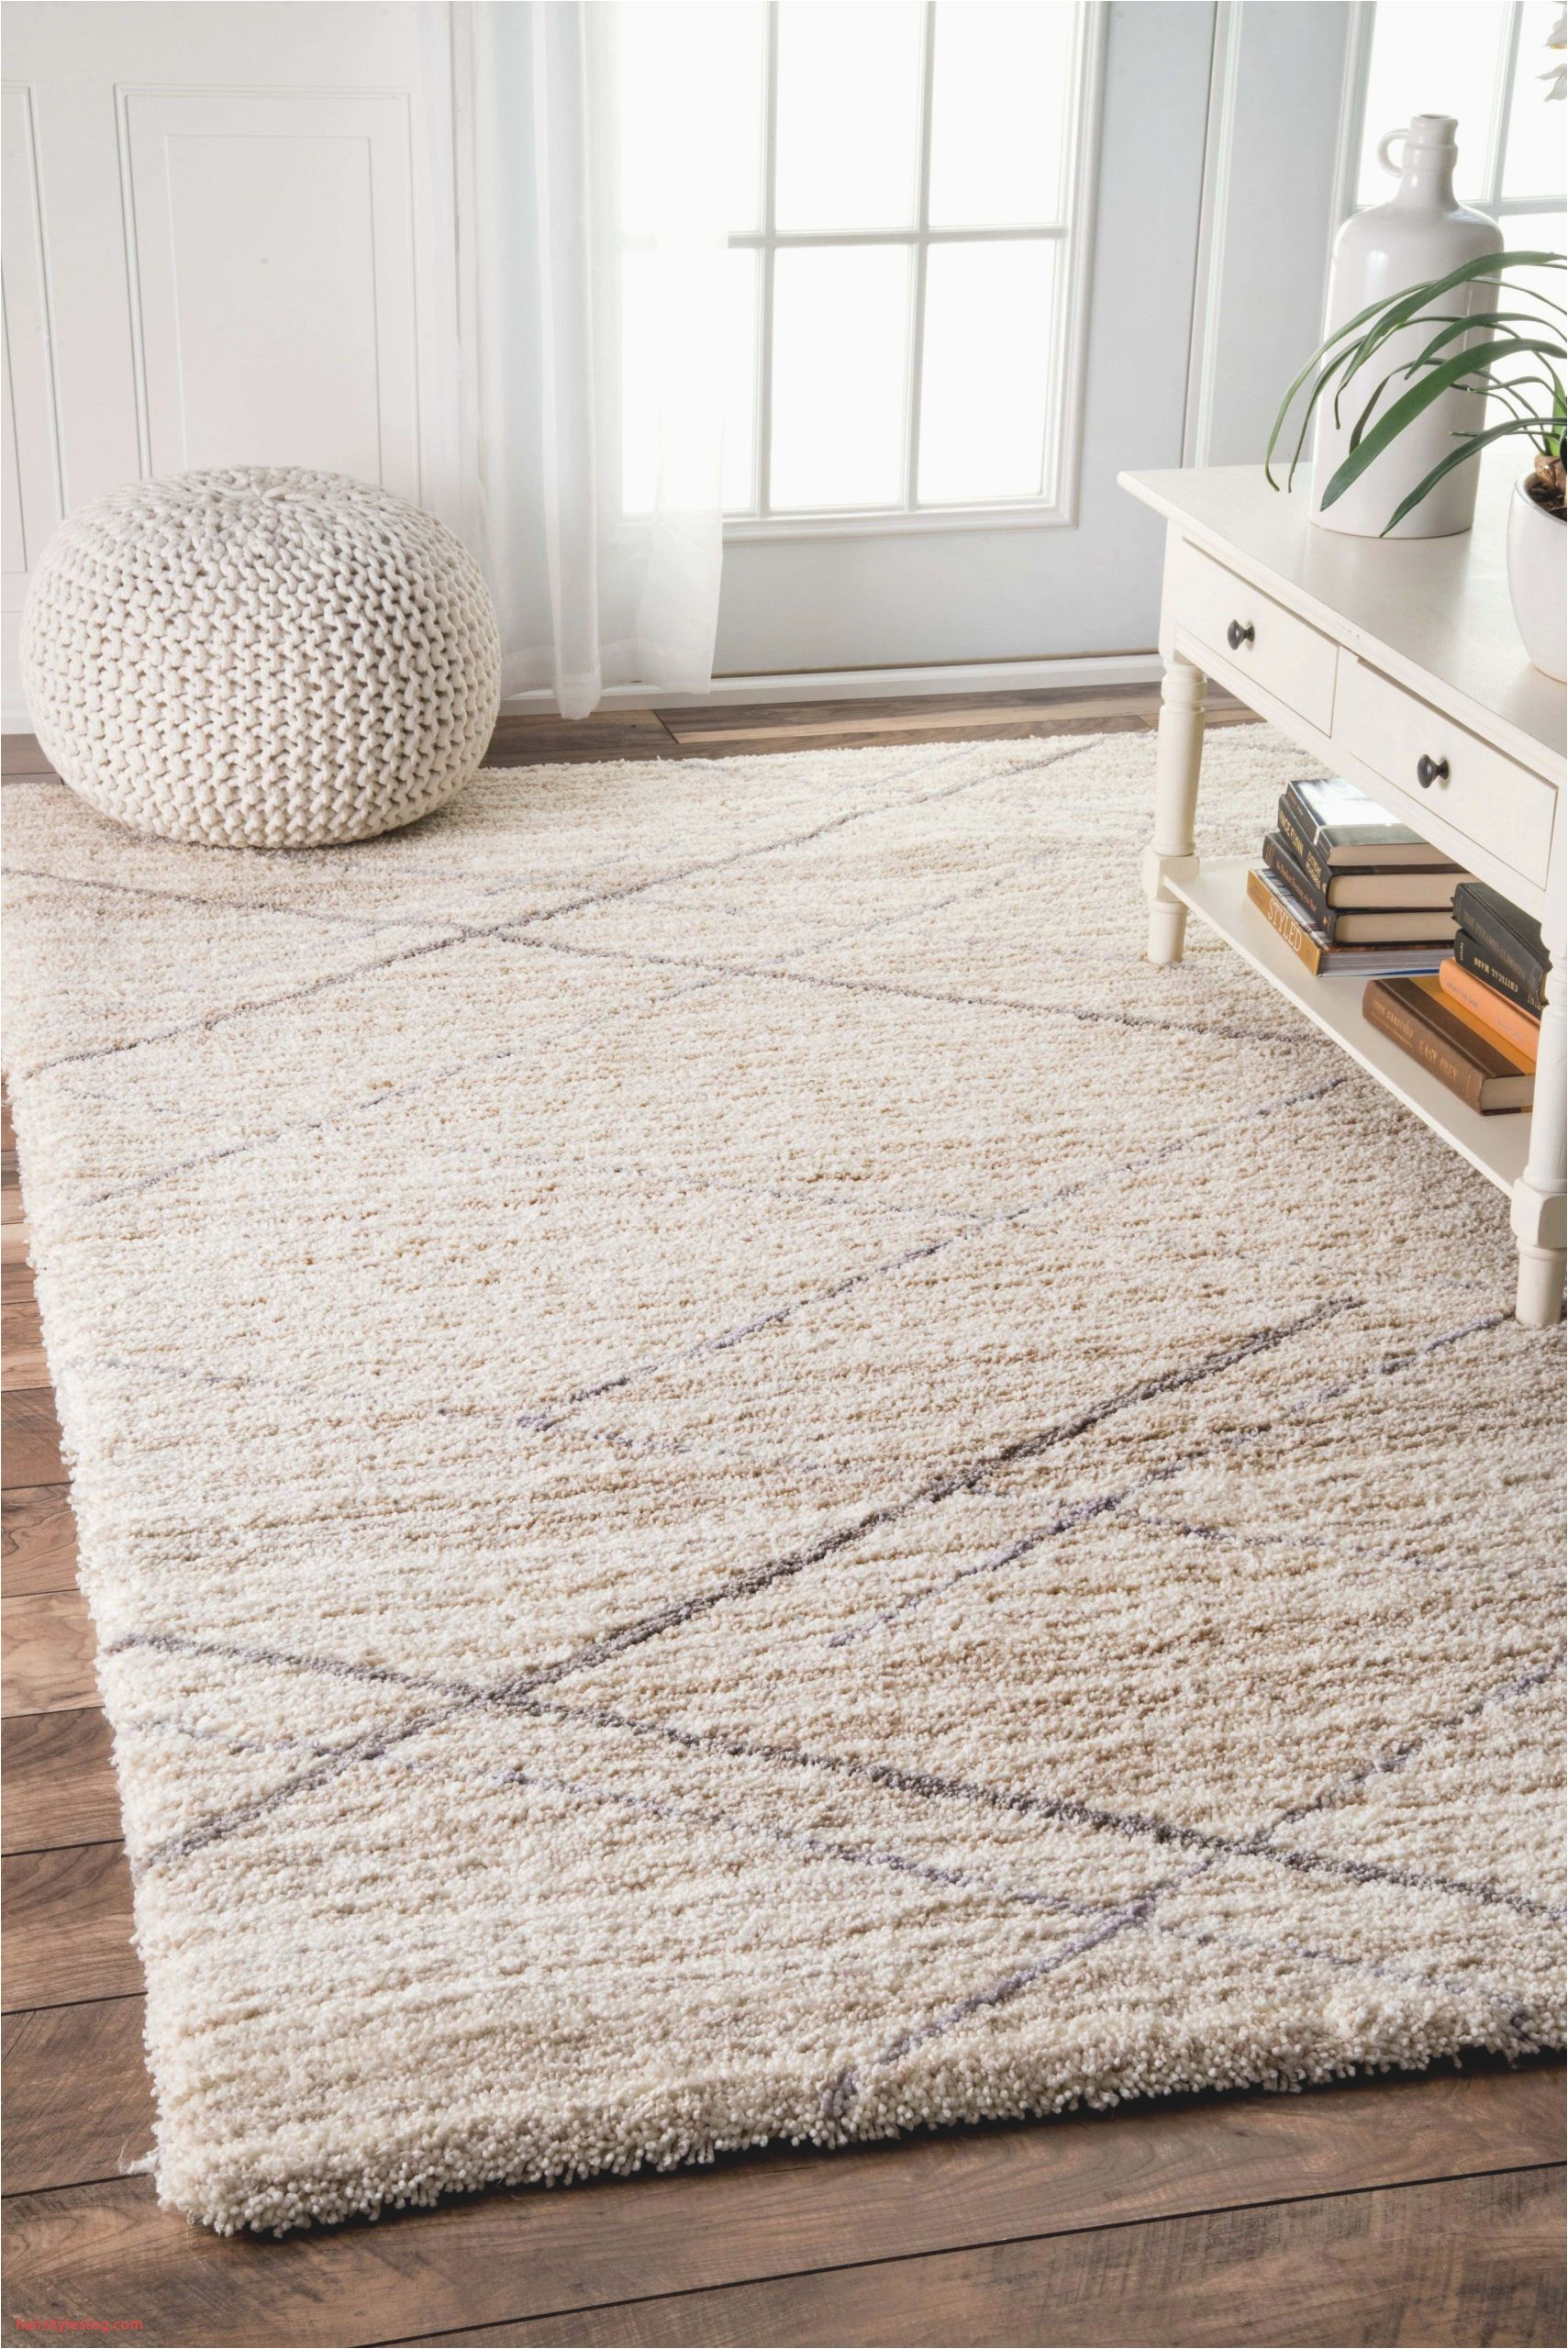 30 new 12x8 area rug which popular this year shag rug within big area rugs for living room scaled